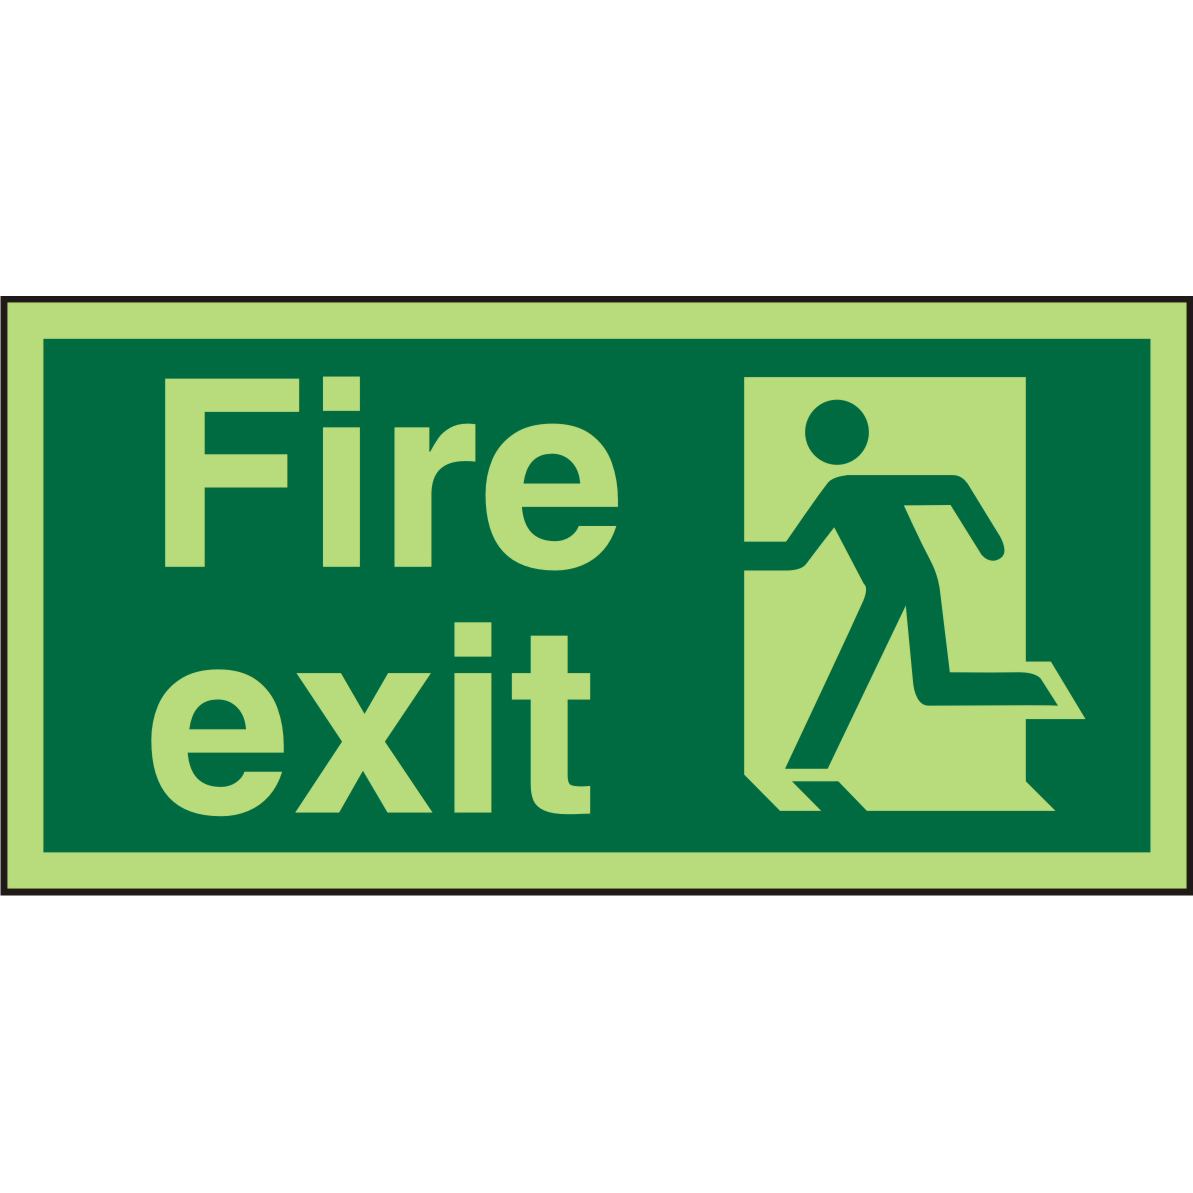 Photolu Sign 300x150 1mm Plastic Fire Exit Man Running Left Ref PSP319SRP300x150 *Up to 10 Day Leadtime*